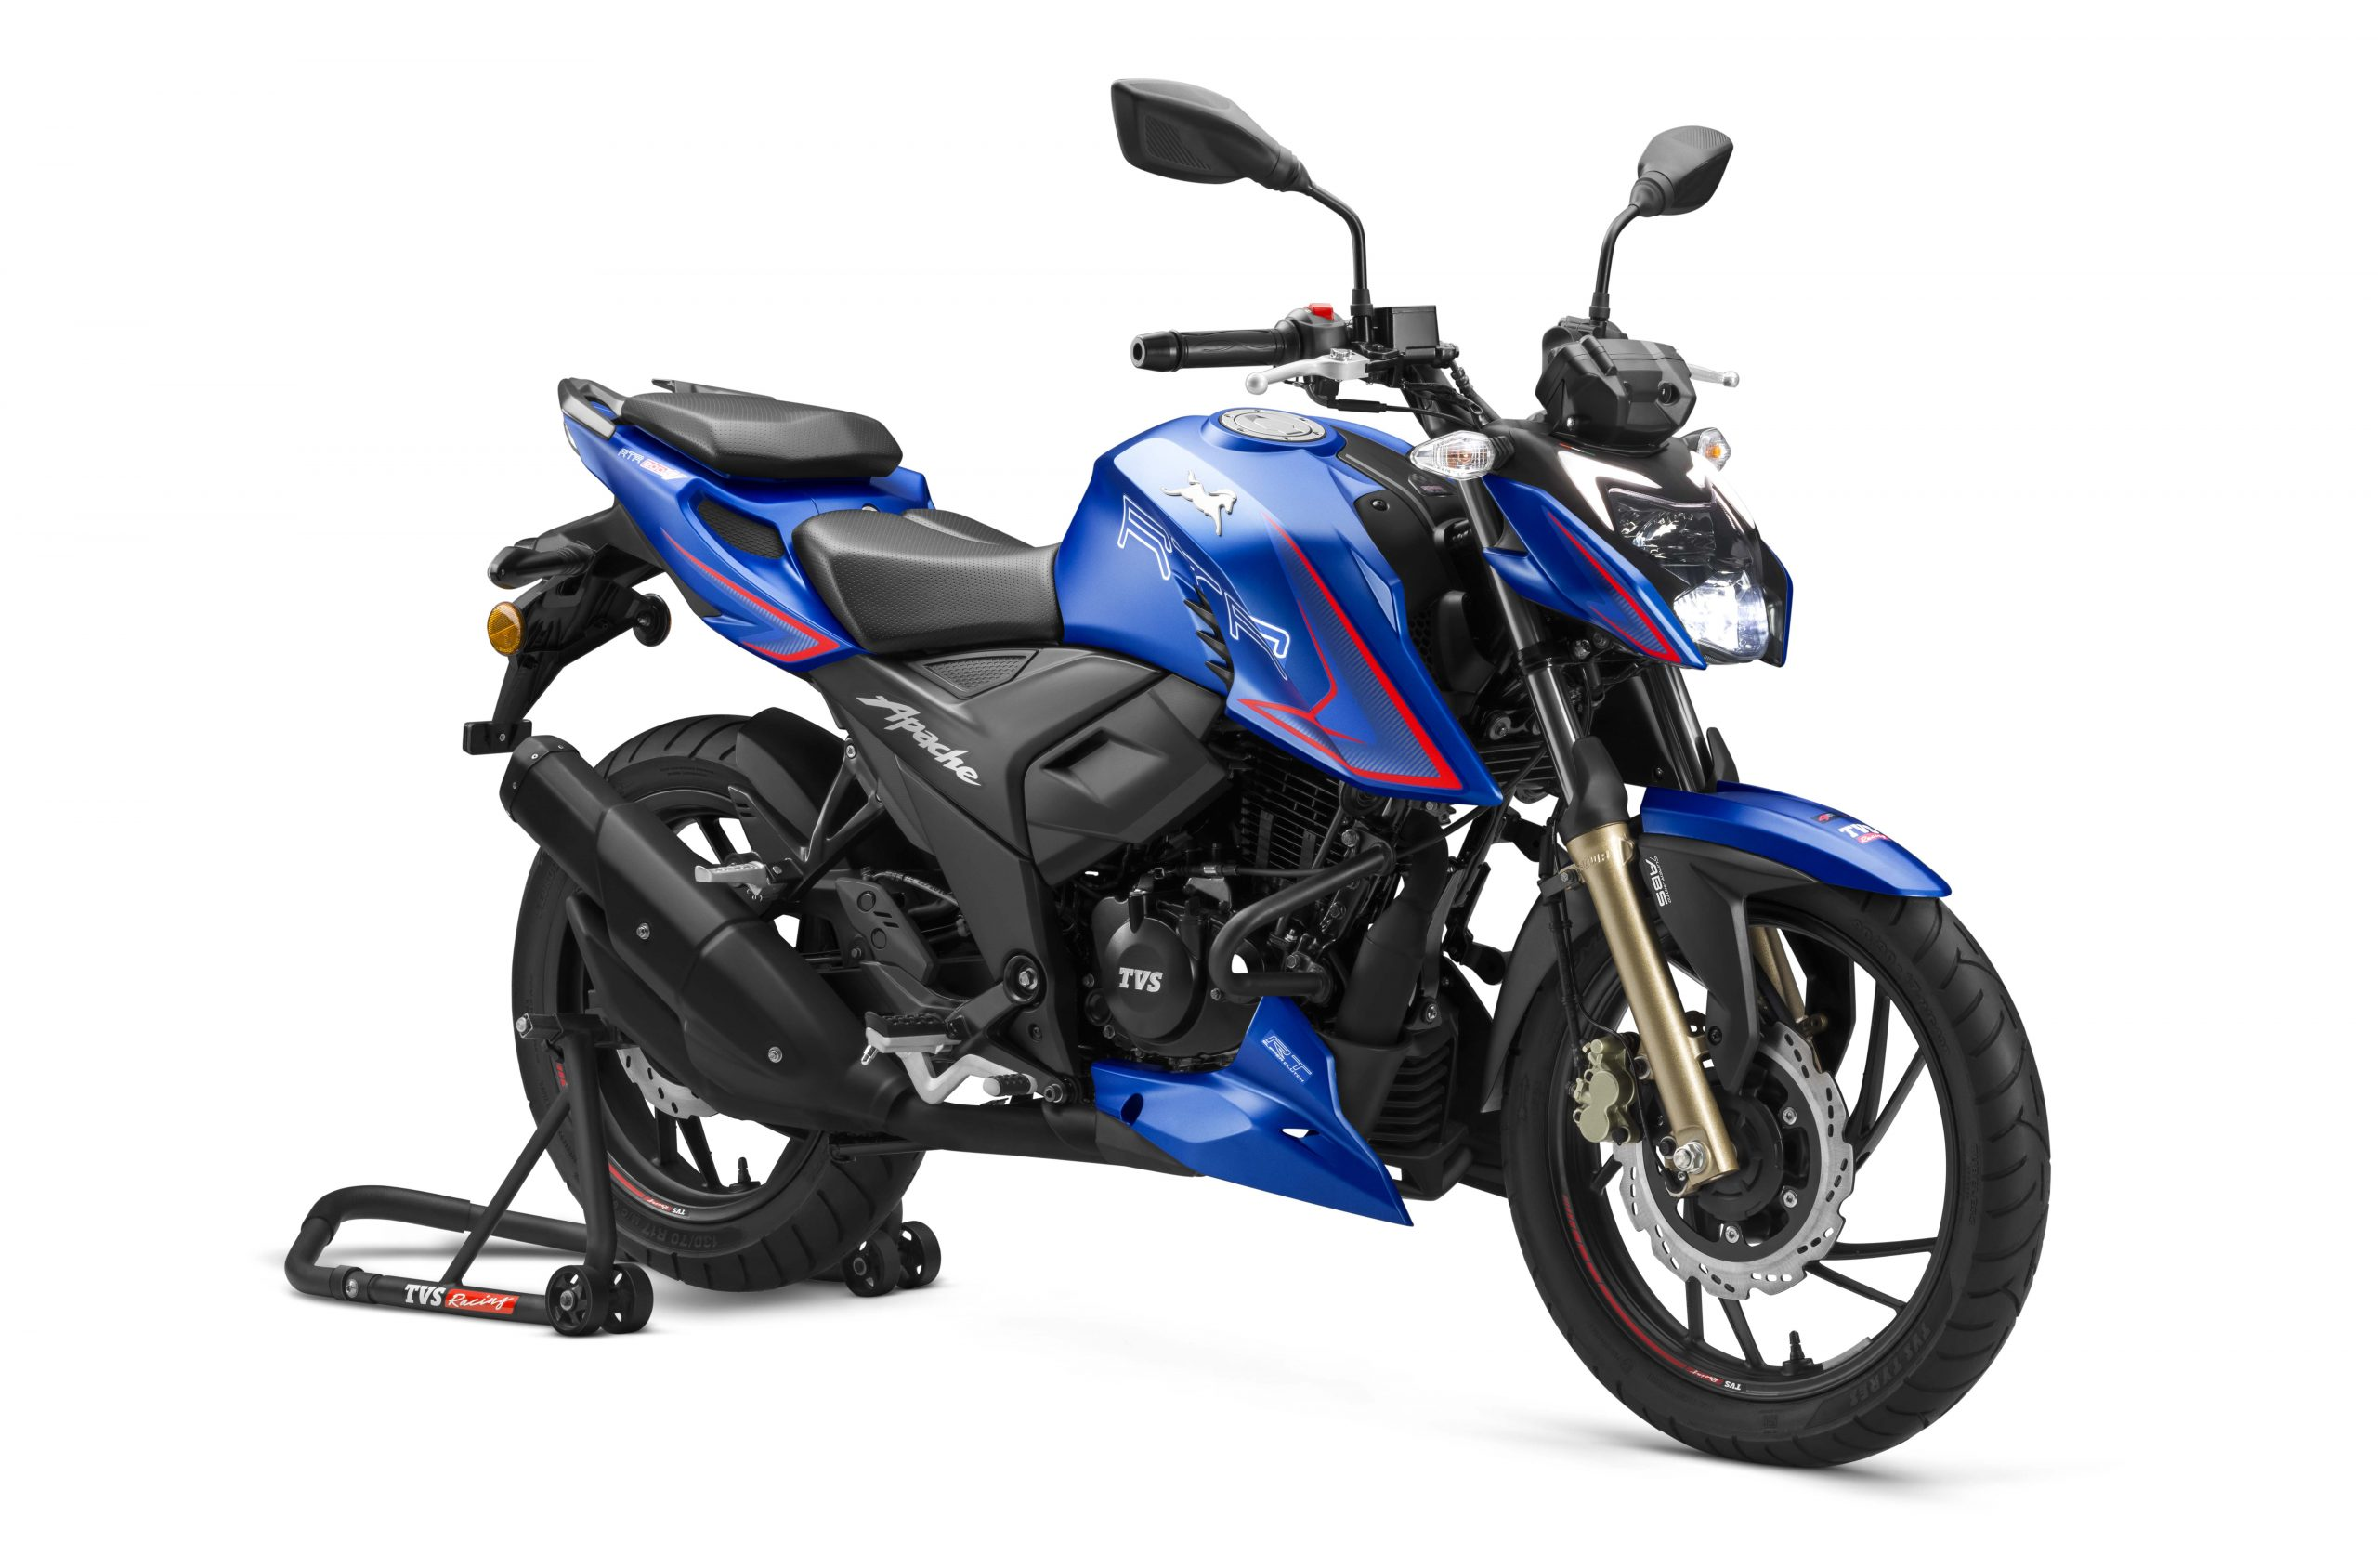 TVS Apache RTR 200 4V with Single-Channel ABS launched @Rs. 1,28,020